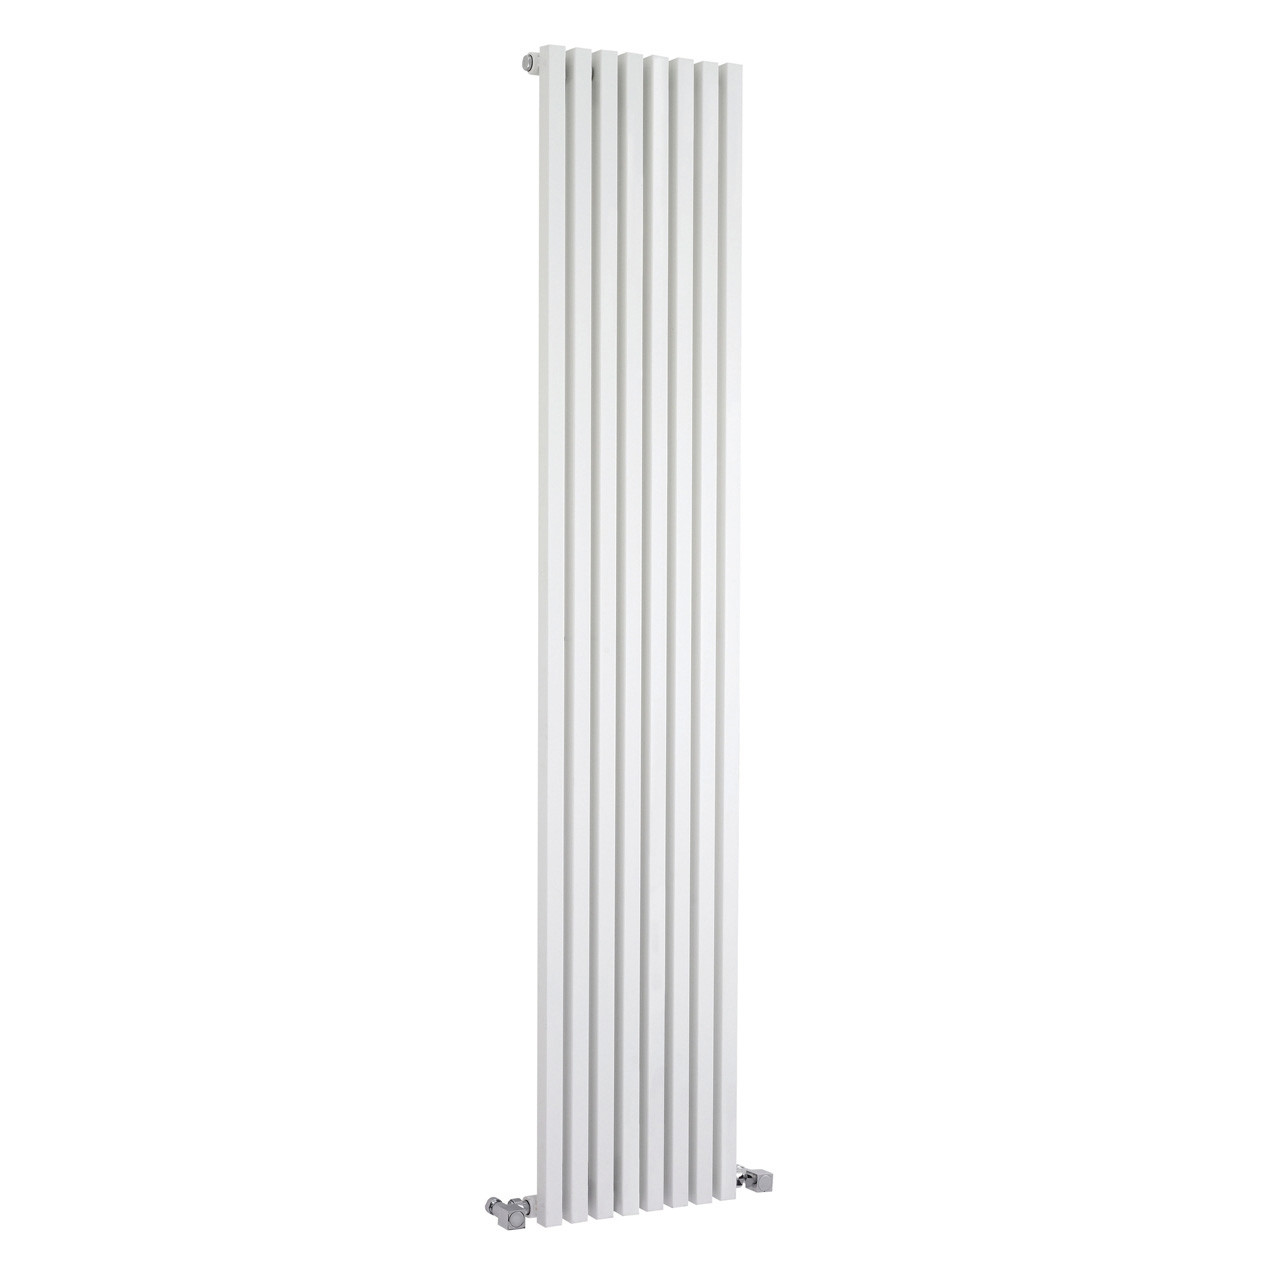 Hudson Reed Kinetic Radiator 1800mm x 360mm - HLW96